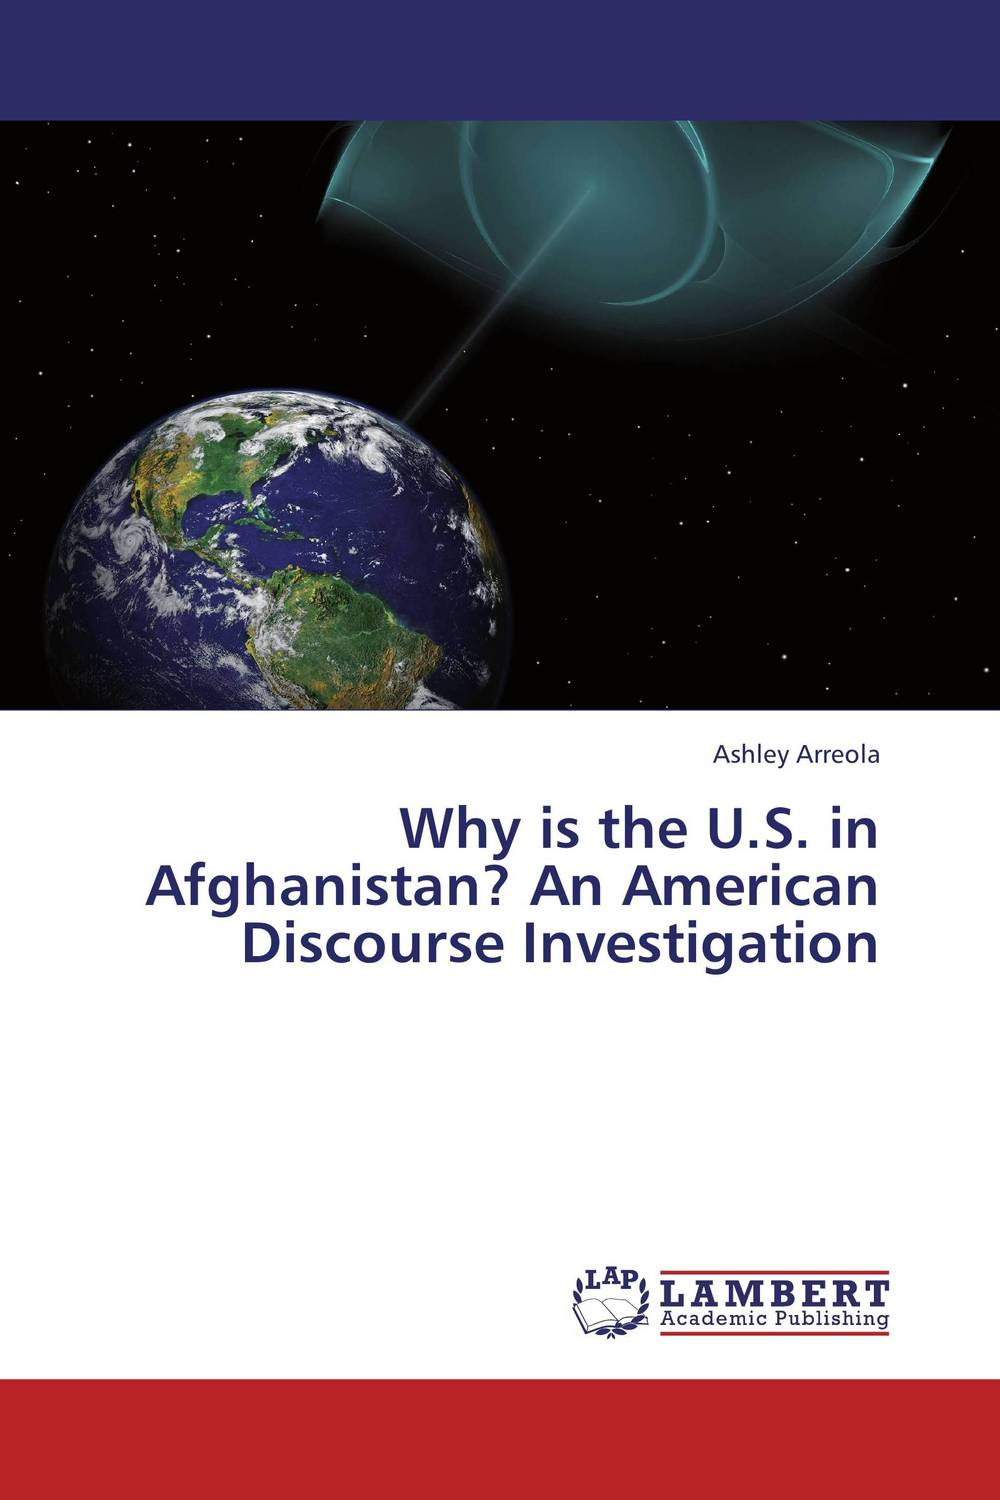 Why is the U.S. in Afghanistan? An American Discourse Investigation doug young the party line how the media dictates public opinion in modern china